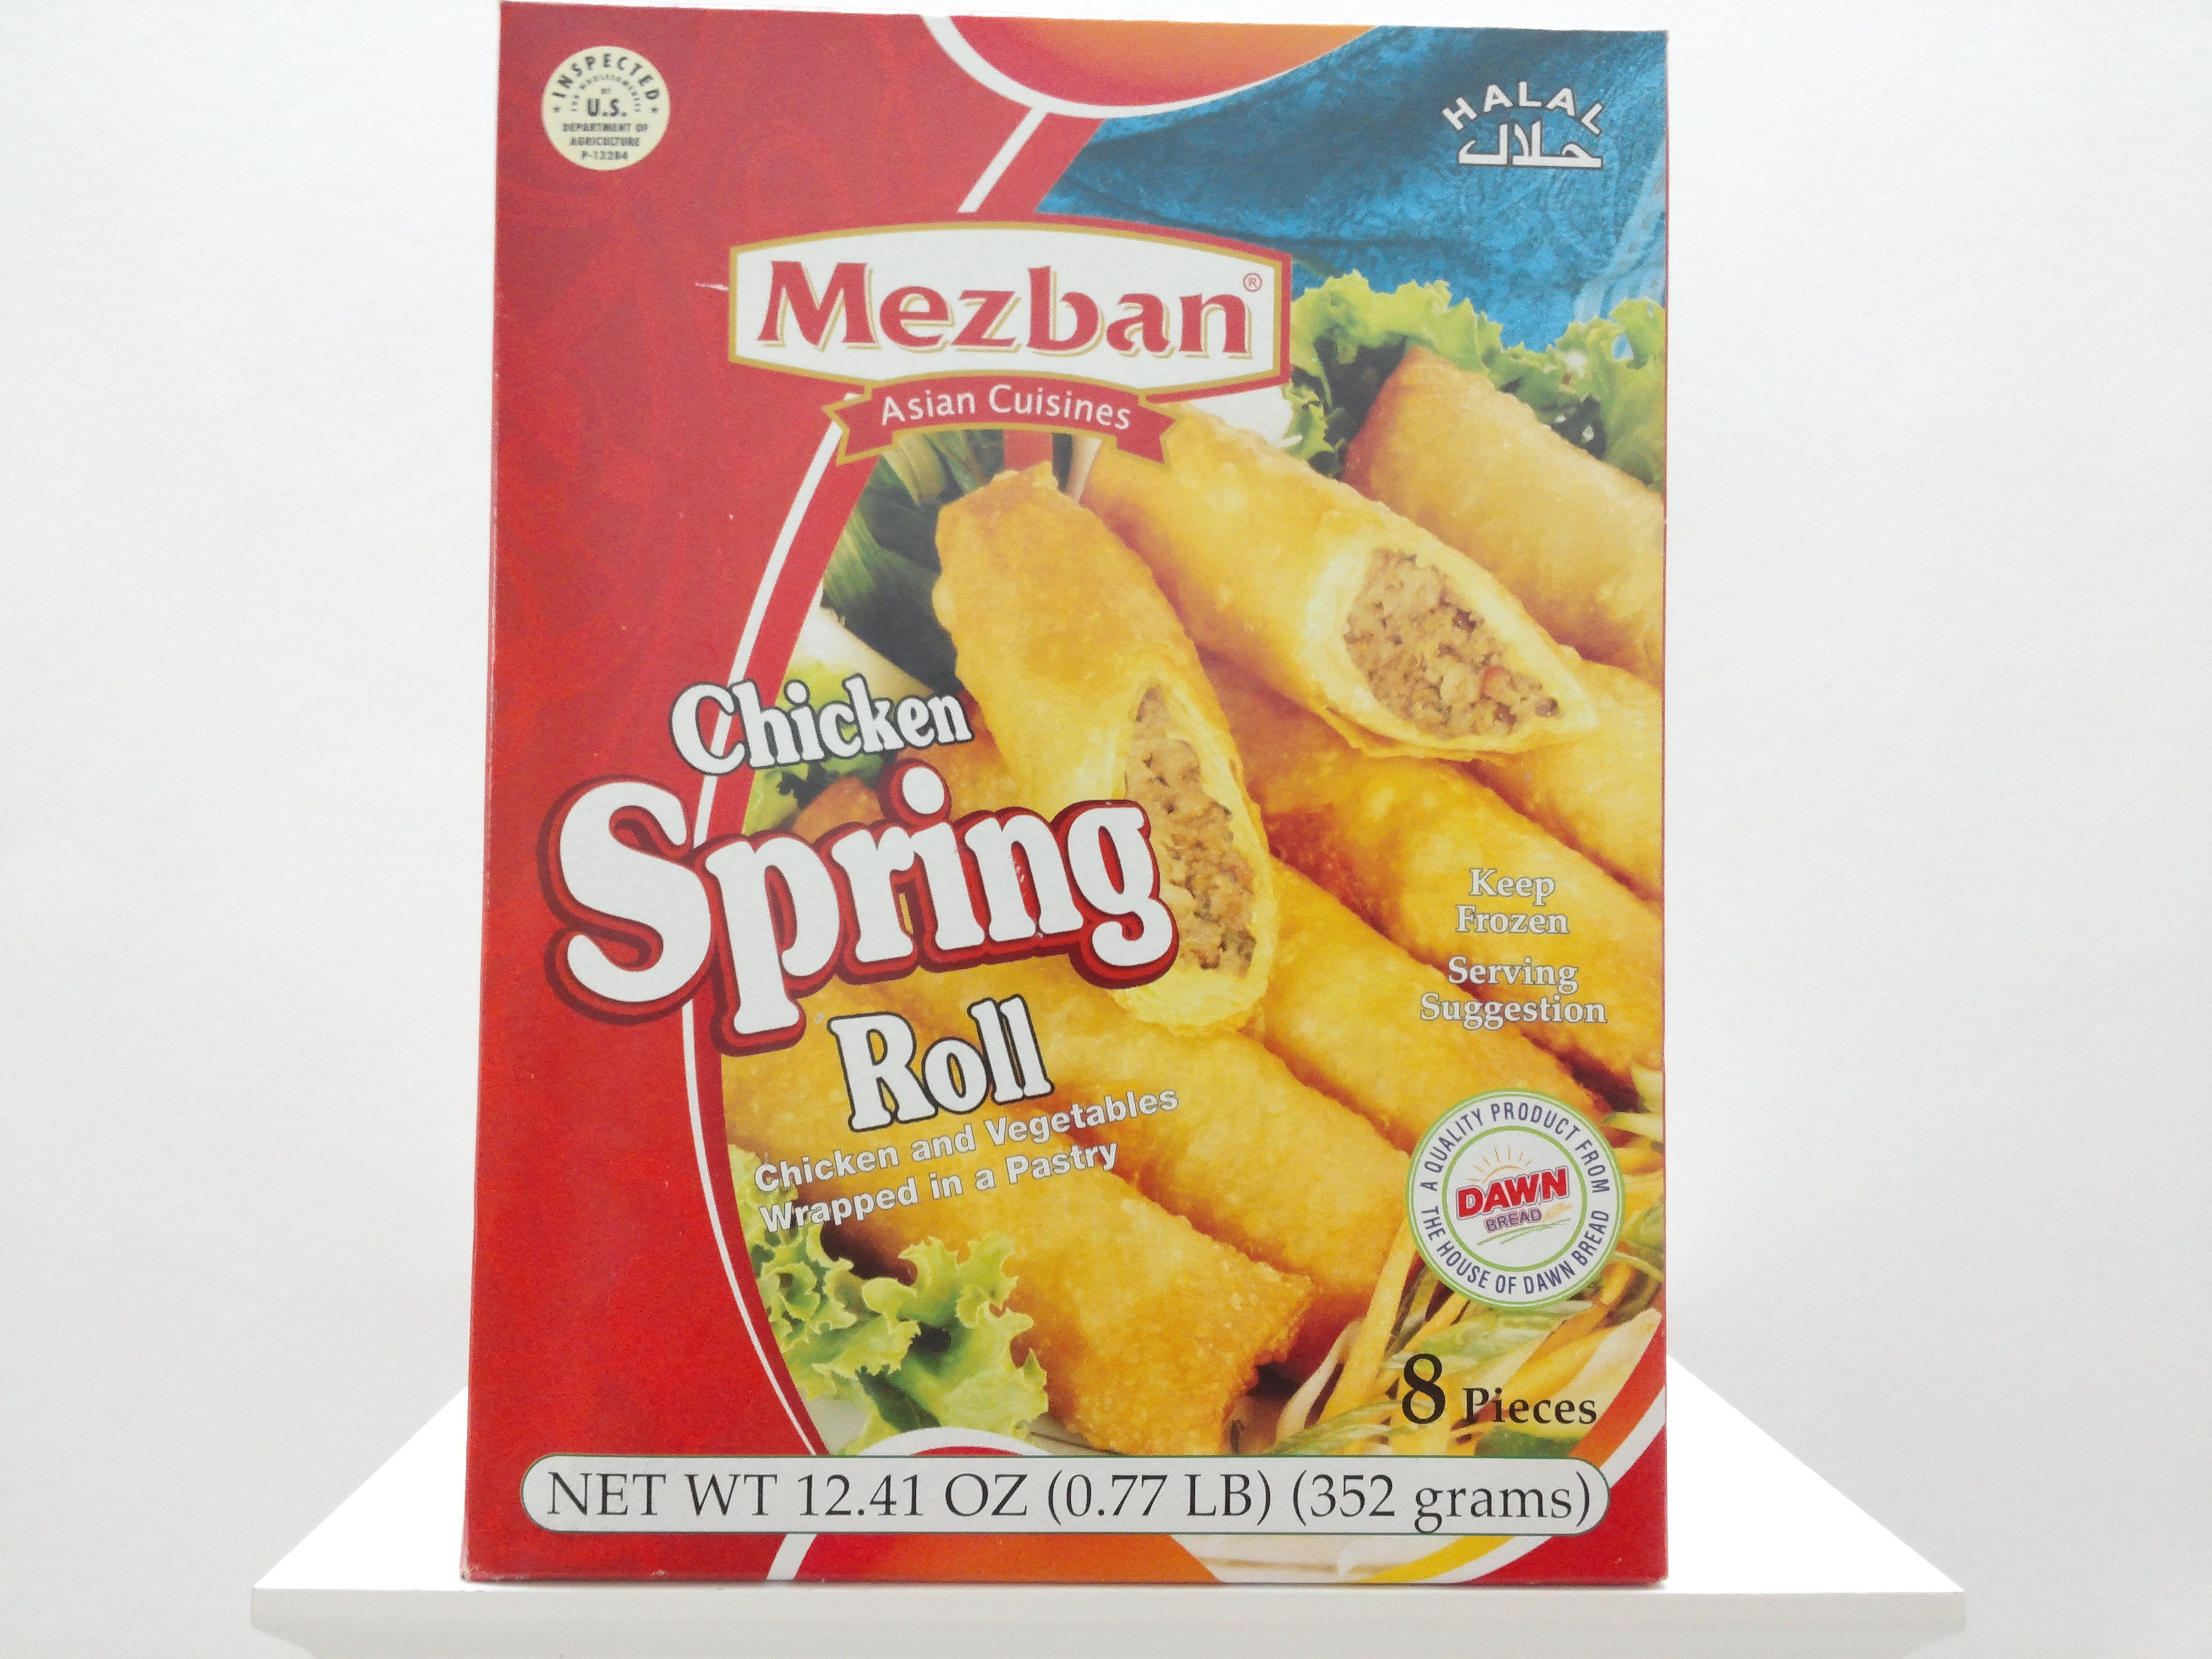 Mezban Chicken Spring Roll 8 pcs 12.41 oz